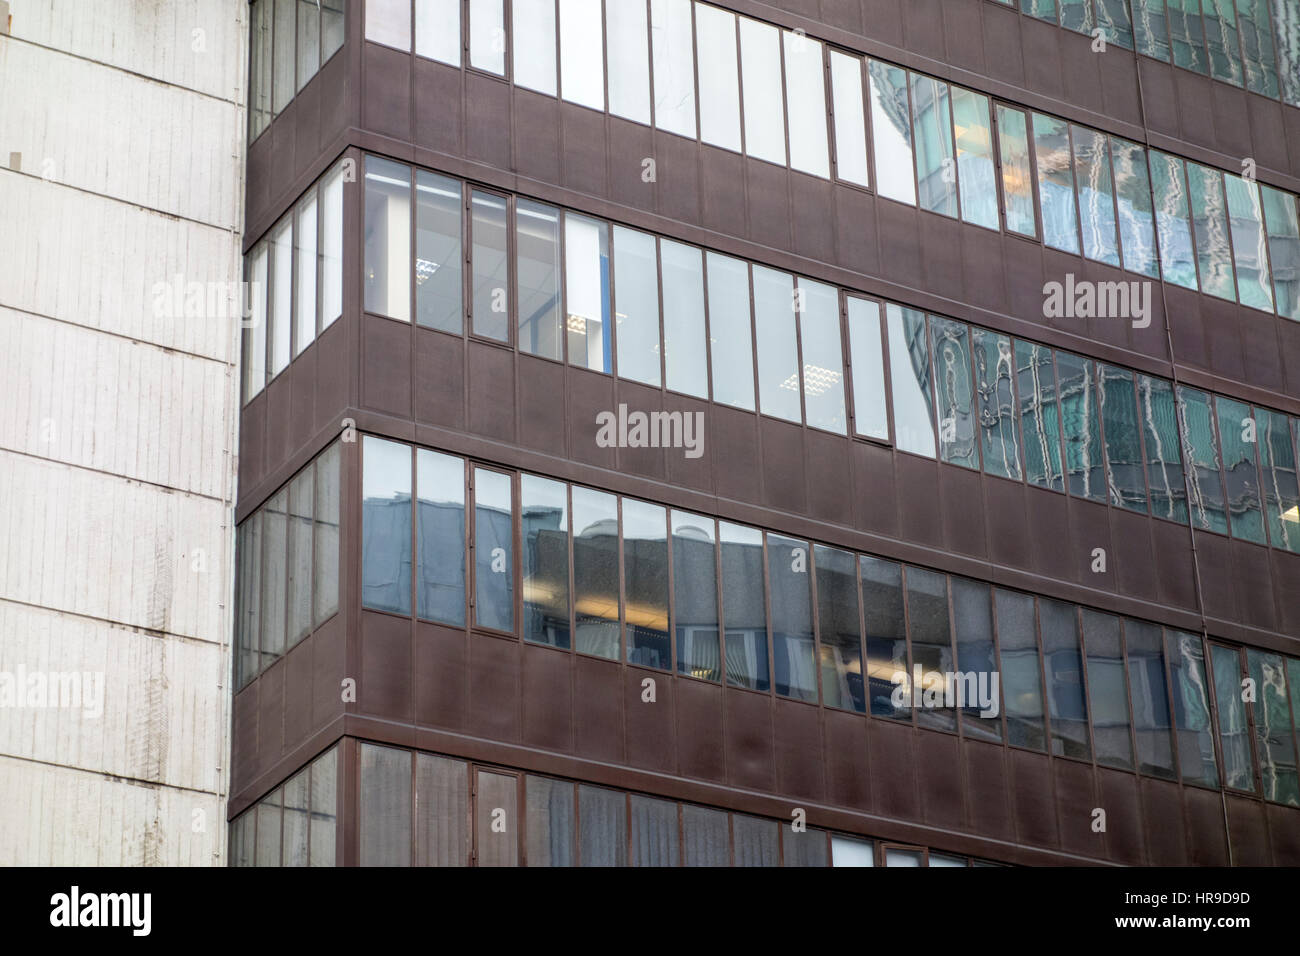 Brutalist architecture of University of Westminster, 115 New Cavendish Street, Fitzrovia, London. modern concrete - Stock Image